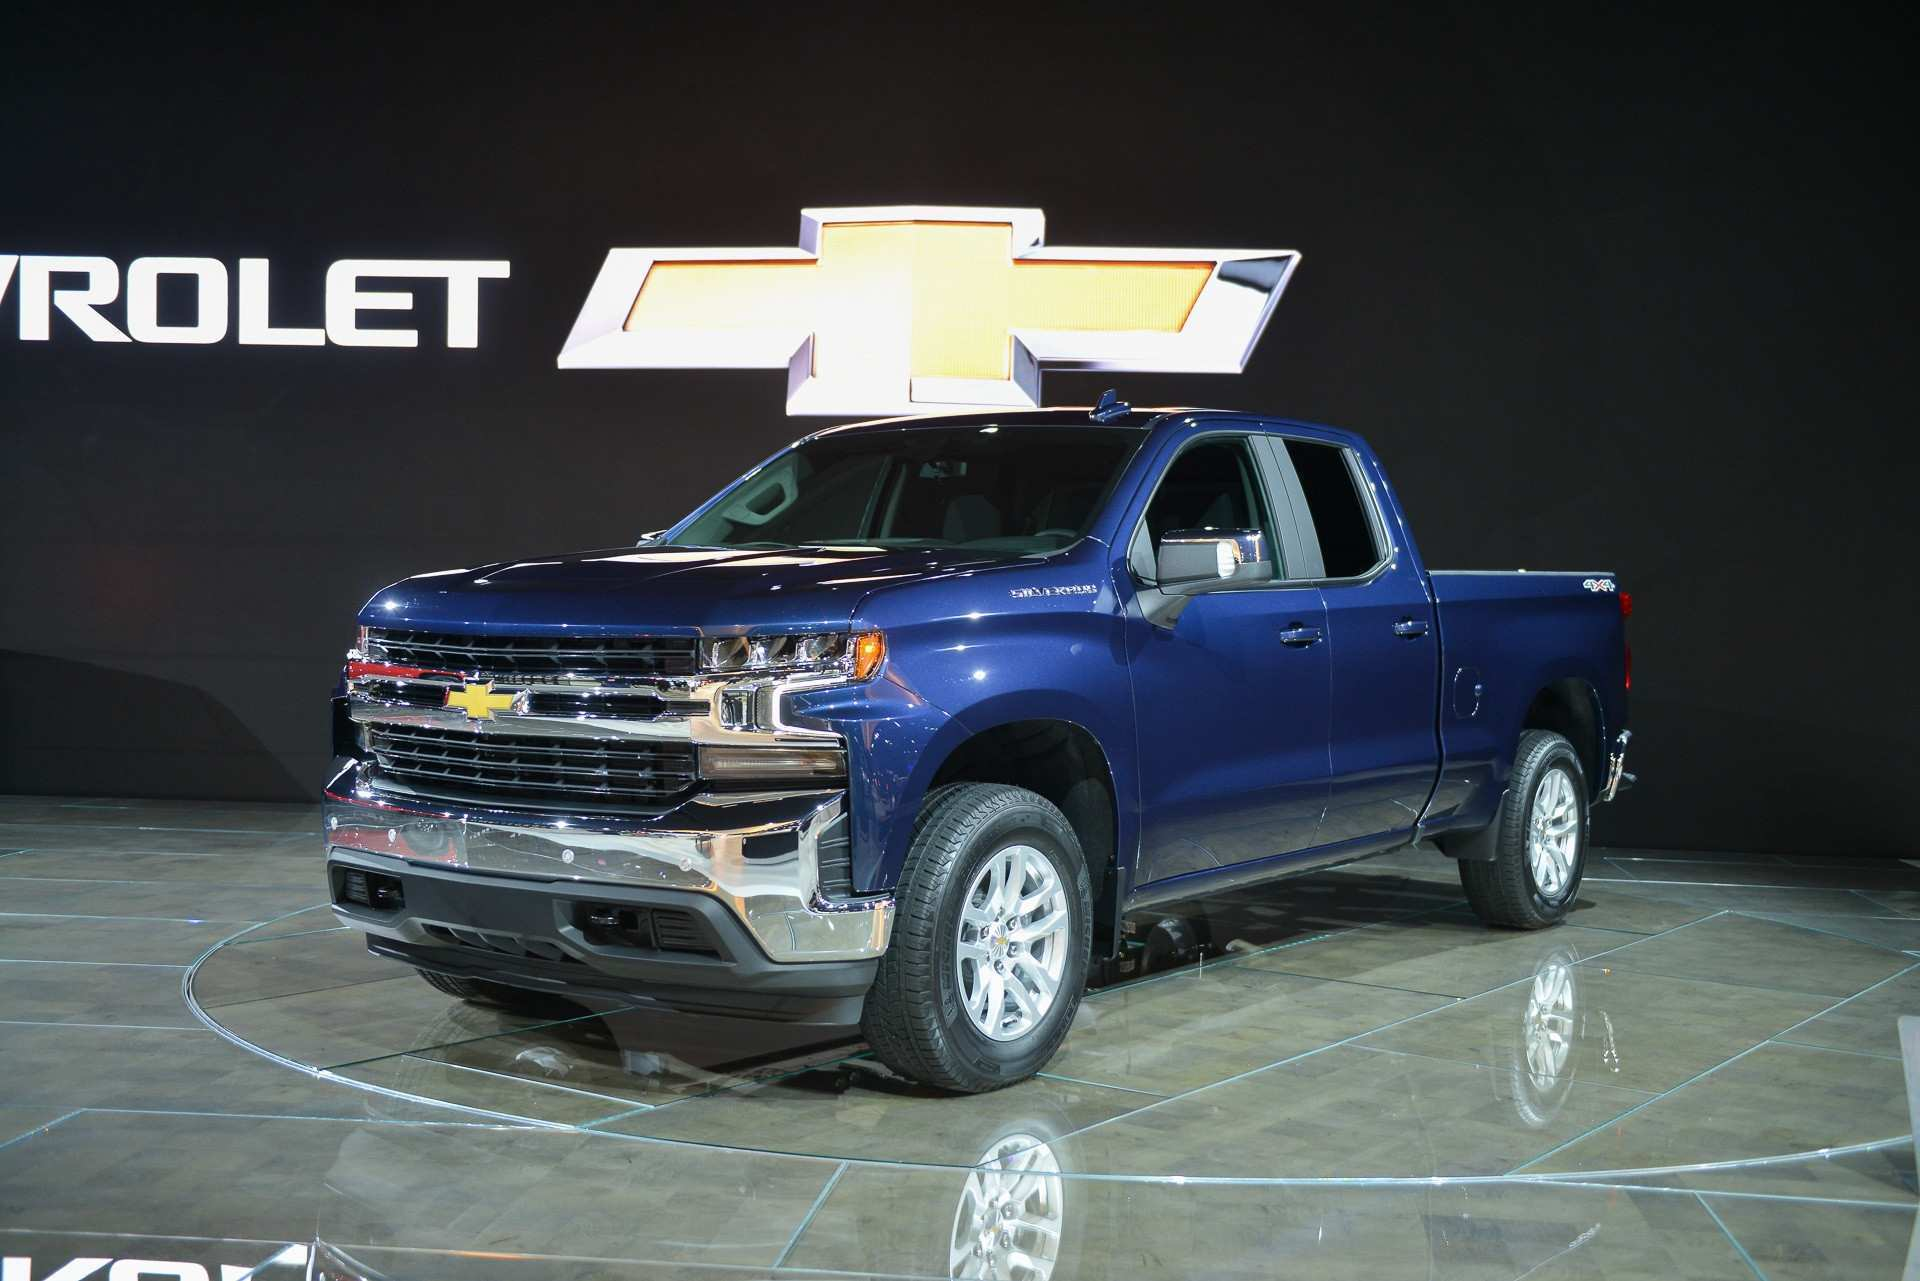 25 New 2020 Chevy Silverado 1500 2500 Spy Shoot by 2020 Chevy Silverado 1500 2500